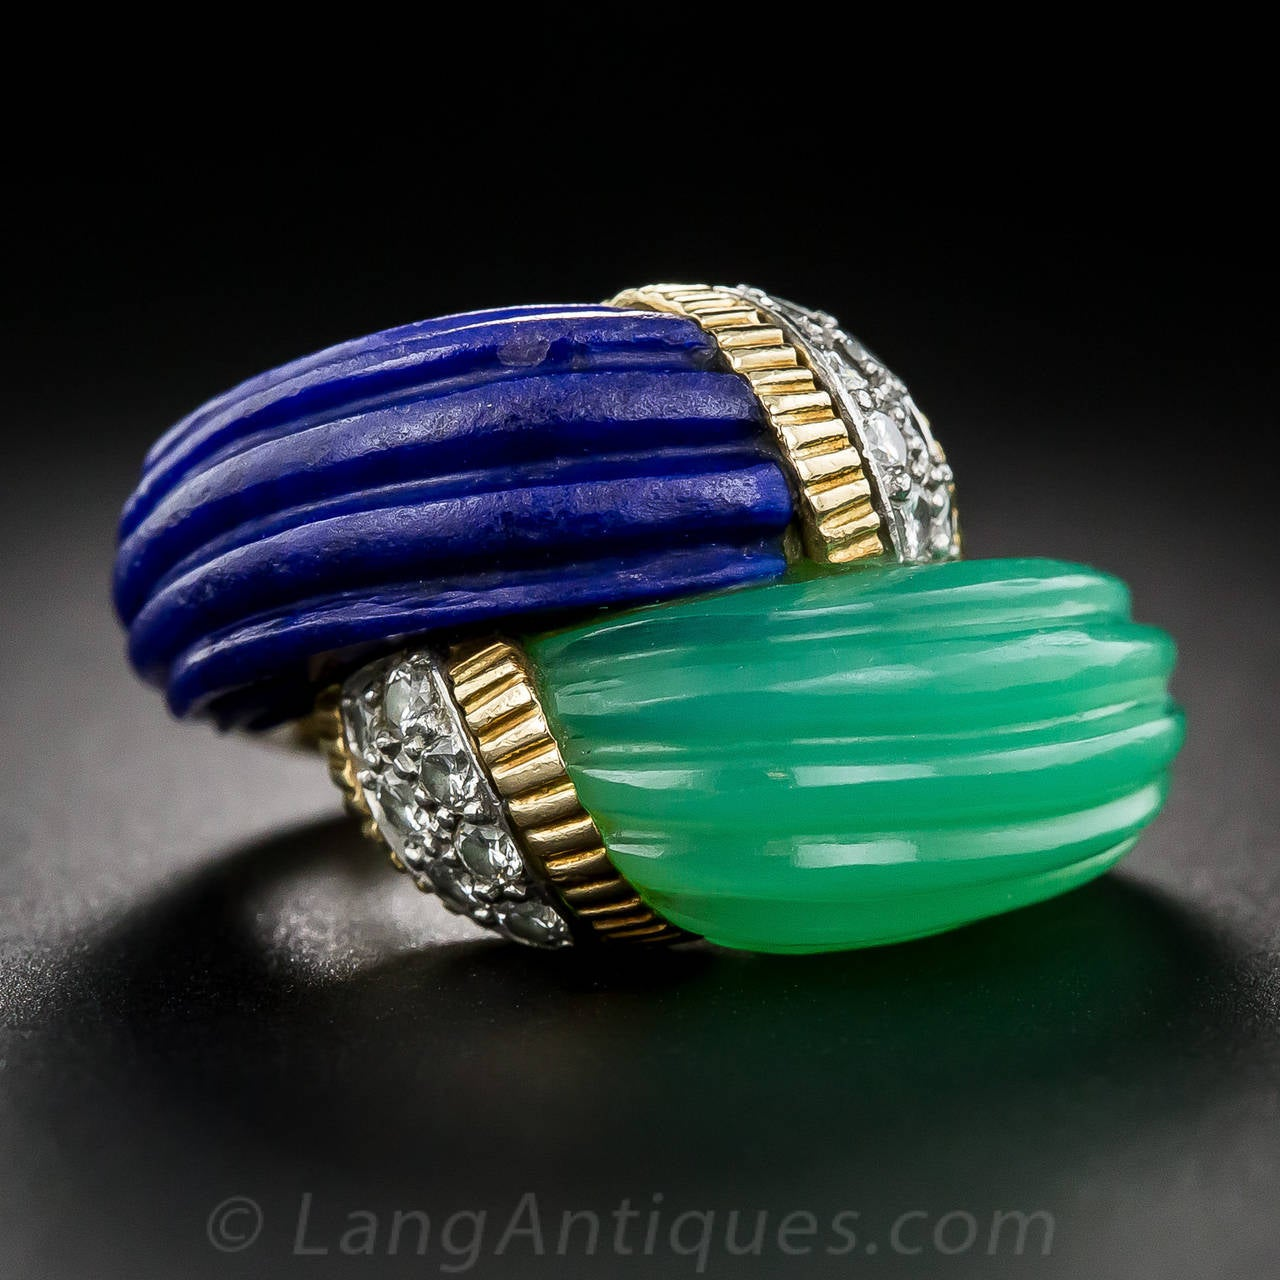 A gem-quality, glass-like, royal-blue lapis lazuli snuggles up close to a mirror-image, bright apple-green chalcedony (a.k.a. chrysoprase), both handcarved in a sweeping wave-like shape with a classic fluted texture. Both pieces are crowned with a